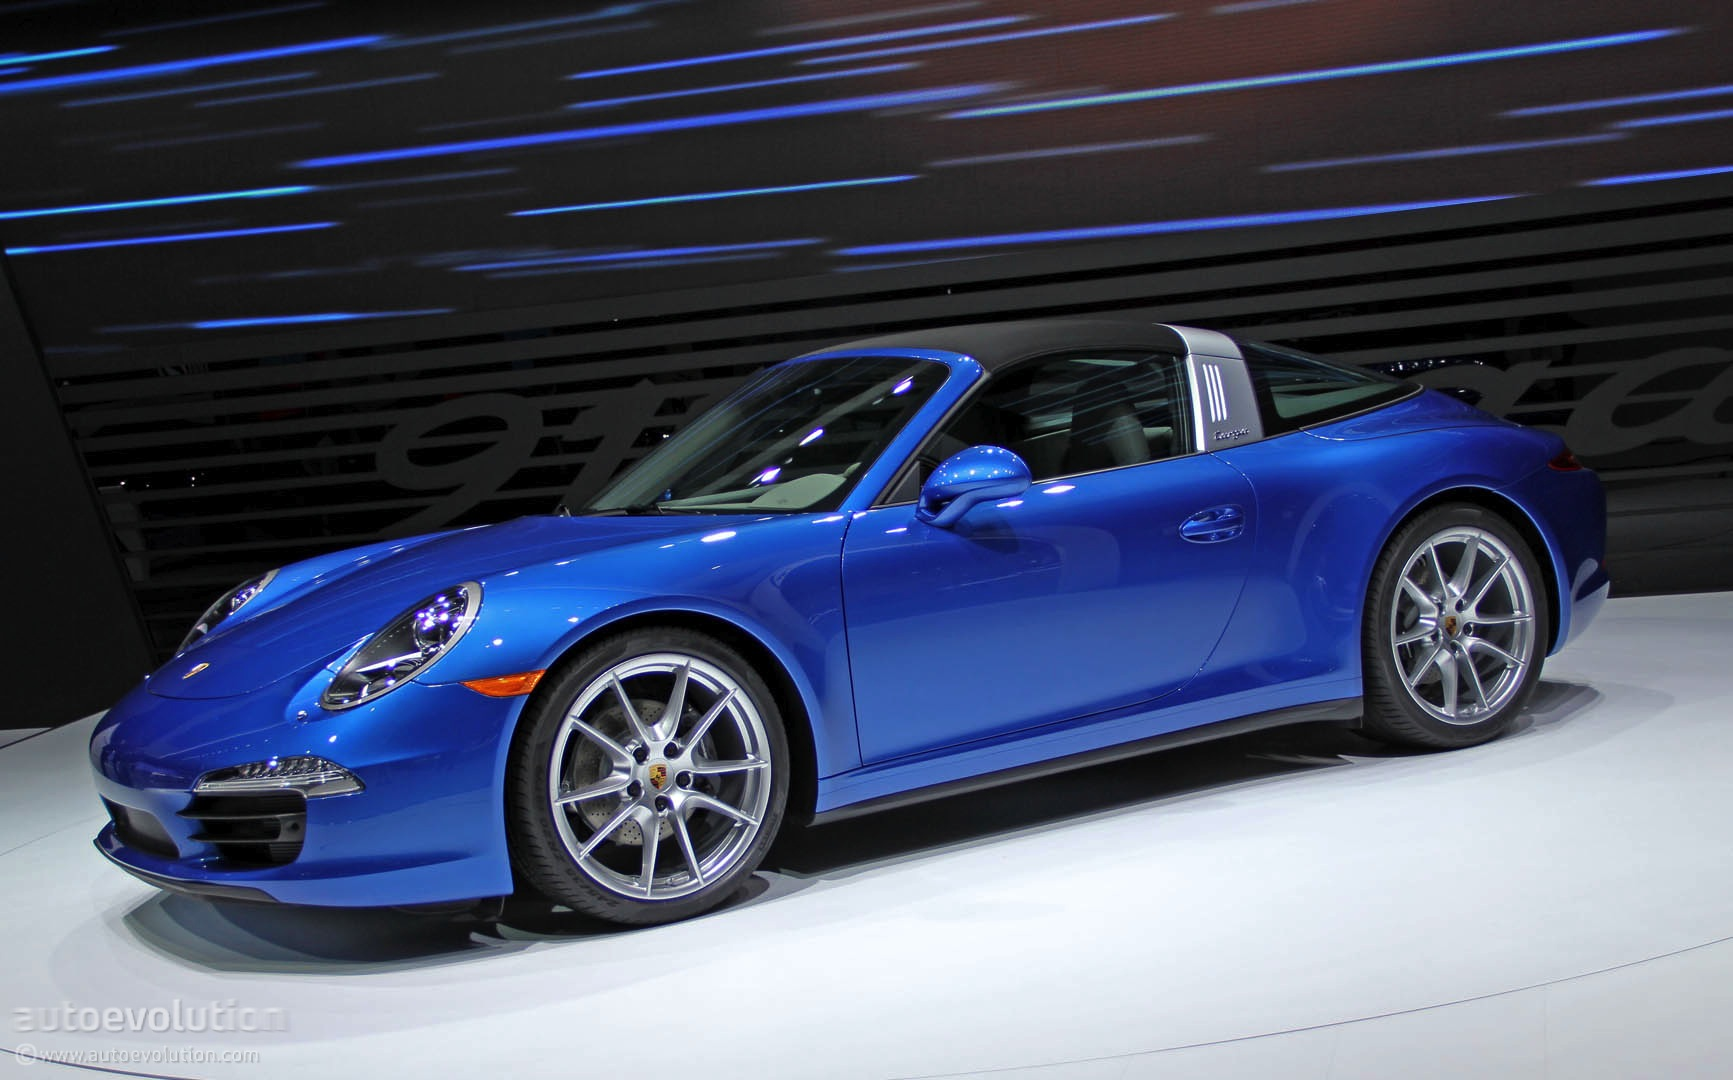 porsche 911 carrera targa 4s 991 specs 2014 2015 2016 2017 2018 autoevolution. Black Bedroom Furniture Sets. Home Design Ideas